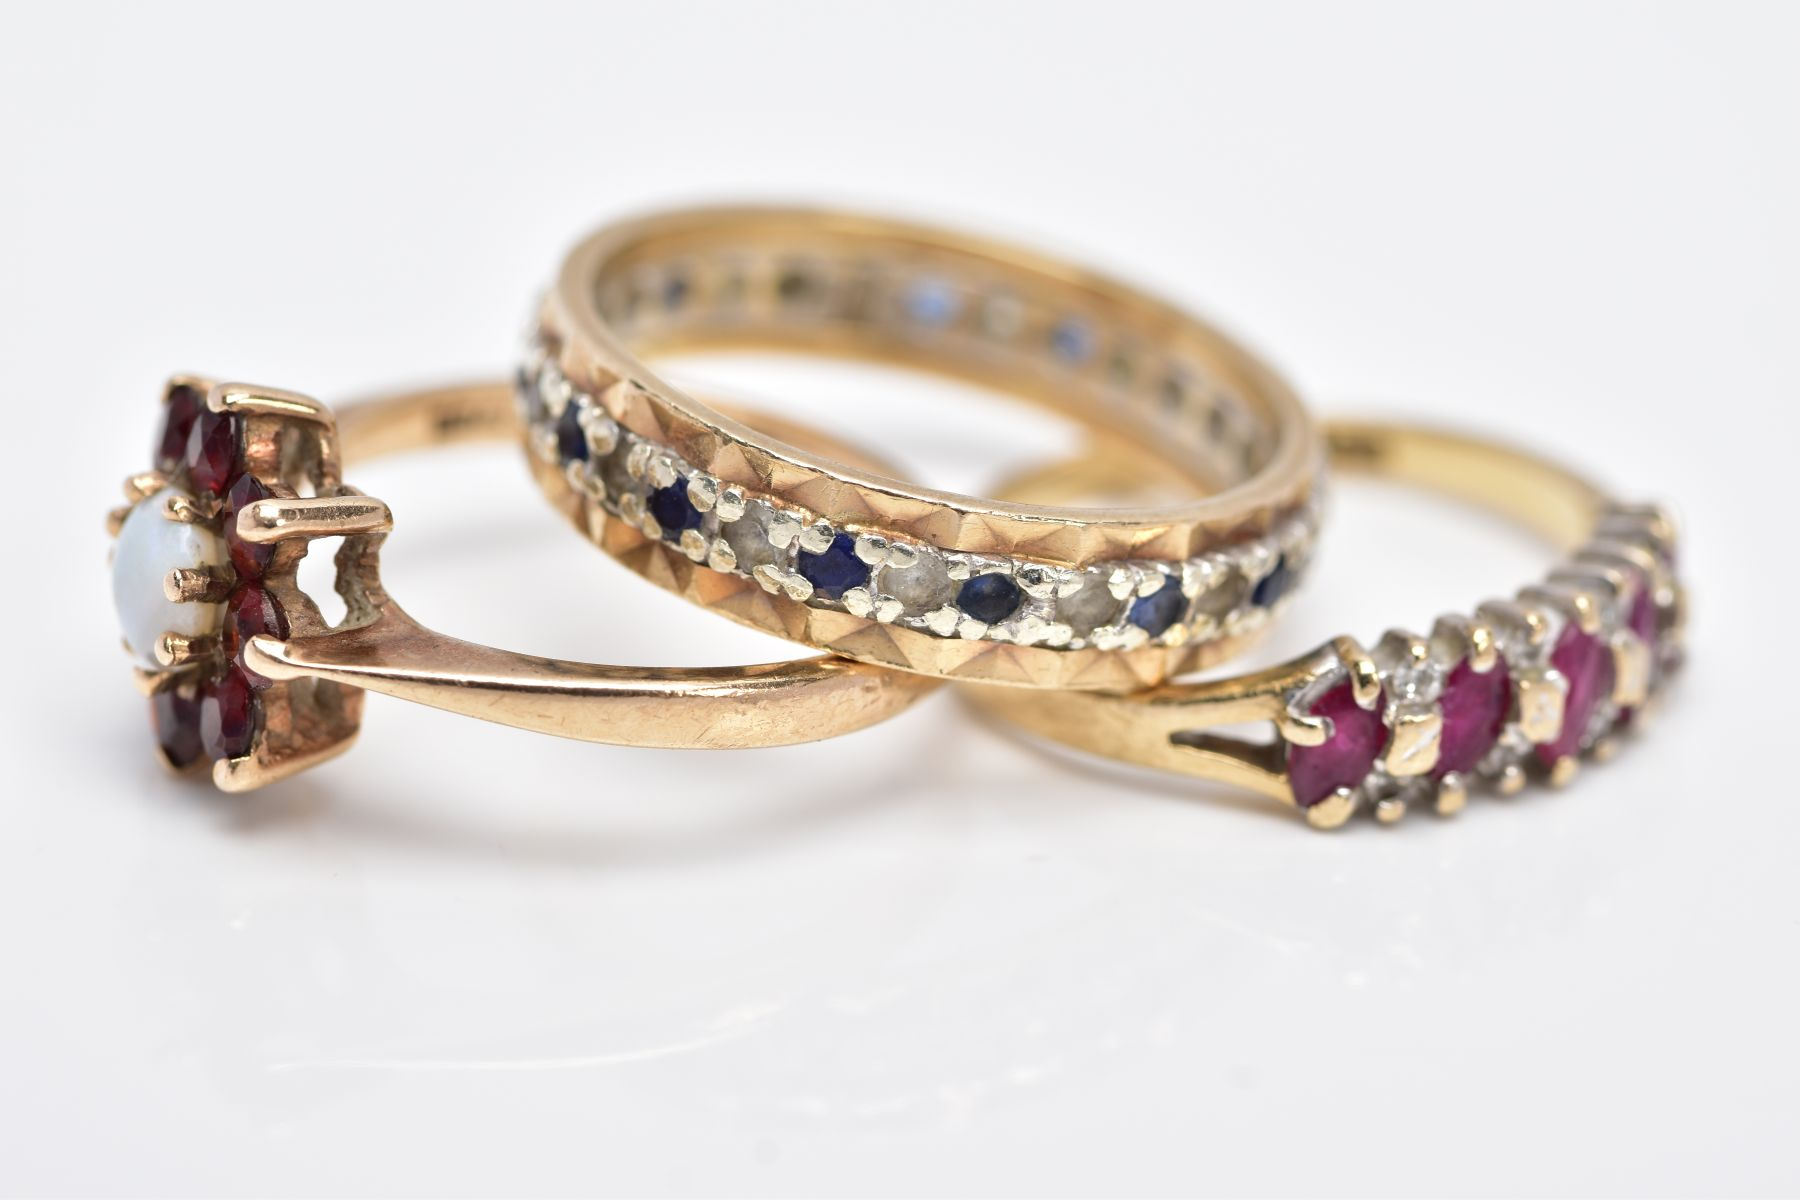 THREE 9CT GOLD GEM SET RINGS, to include a full eternity ring set with colourless spinel and blue - Image 4 of 4